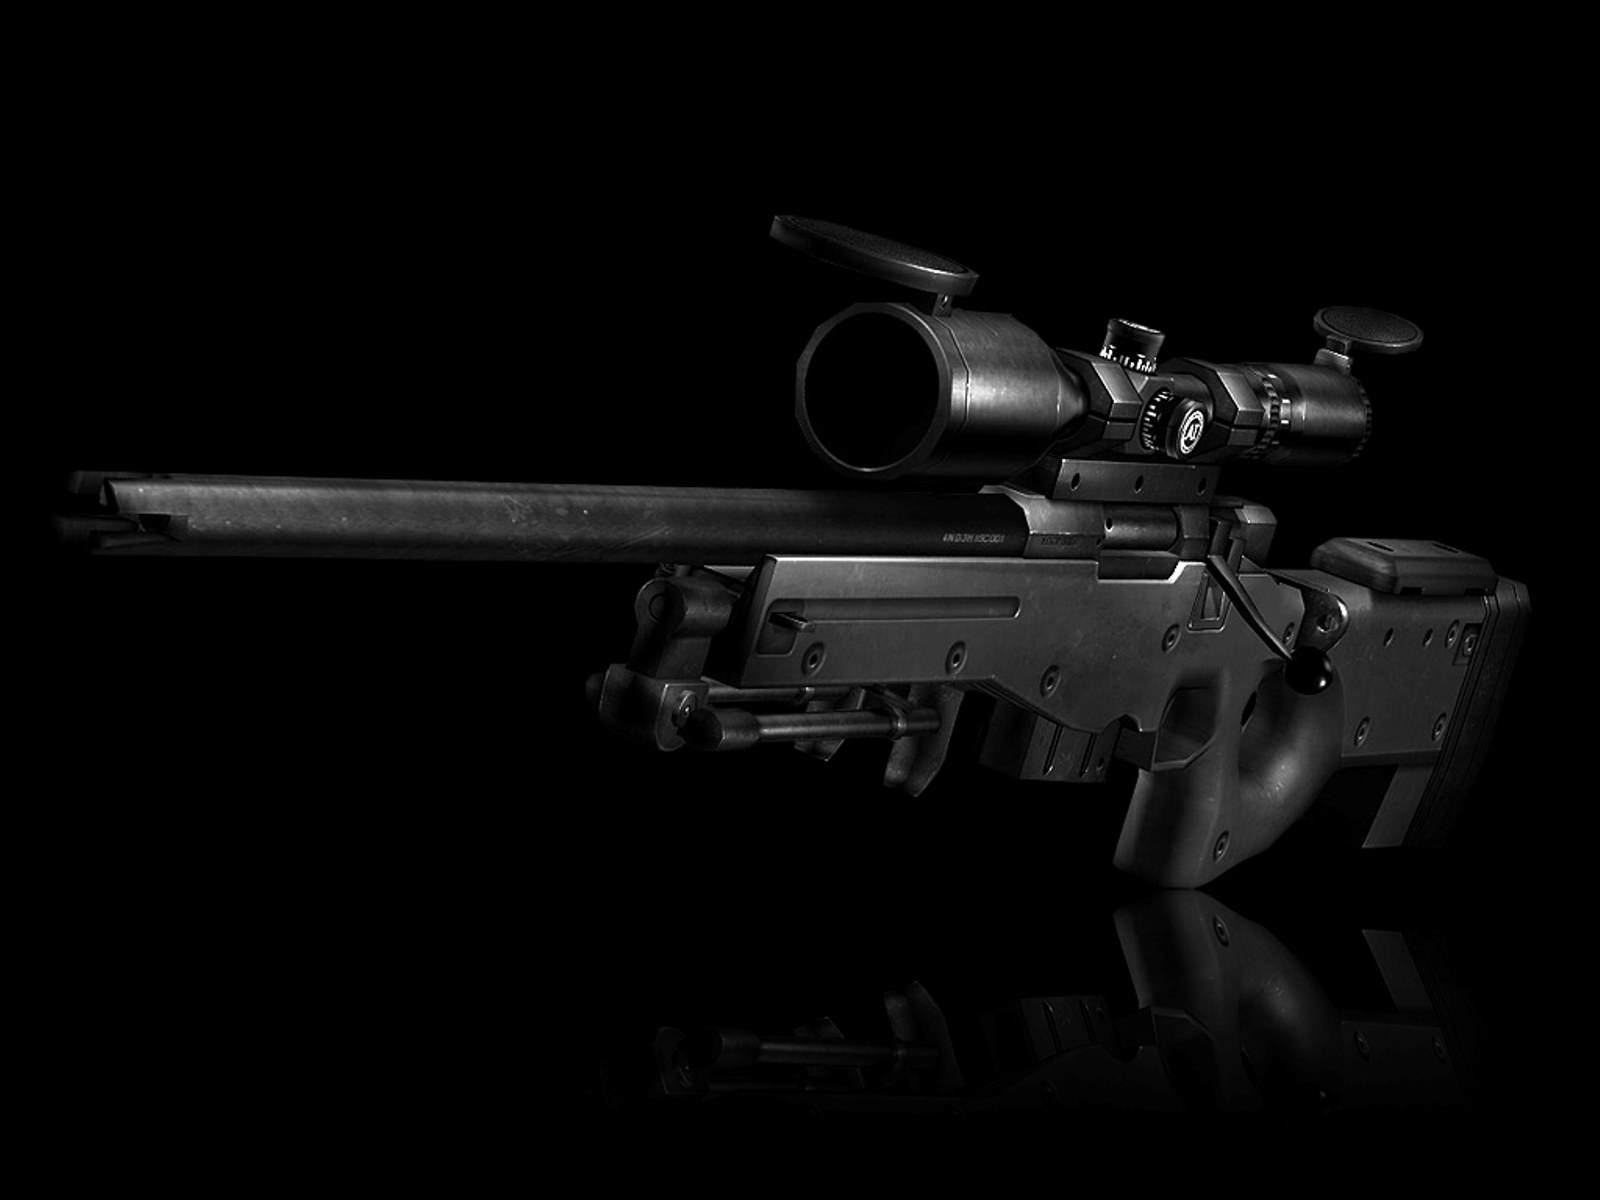 42 Sniper Rifle HD Wallpapers Backgrounds 1600x1200